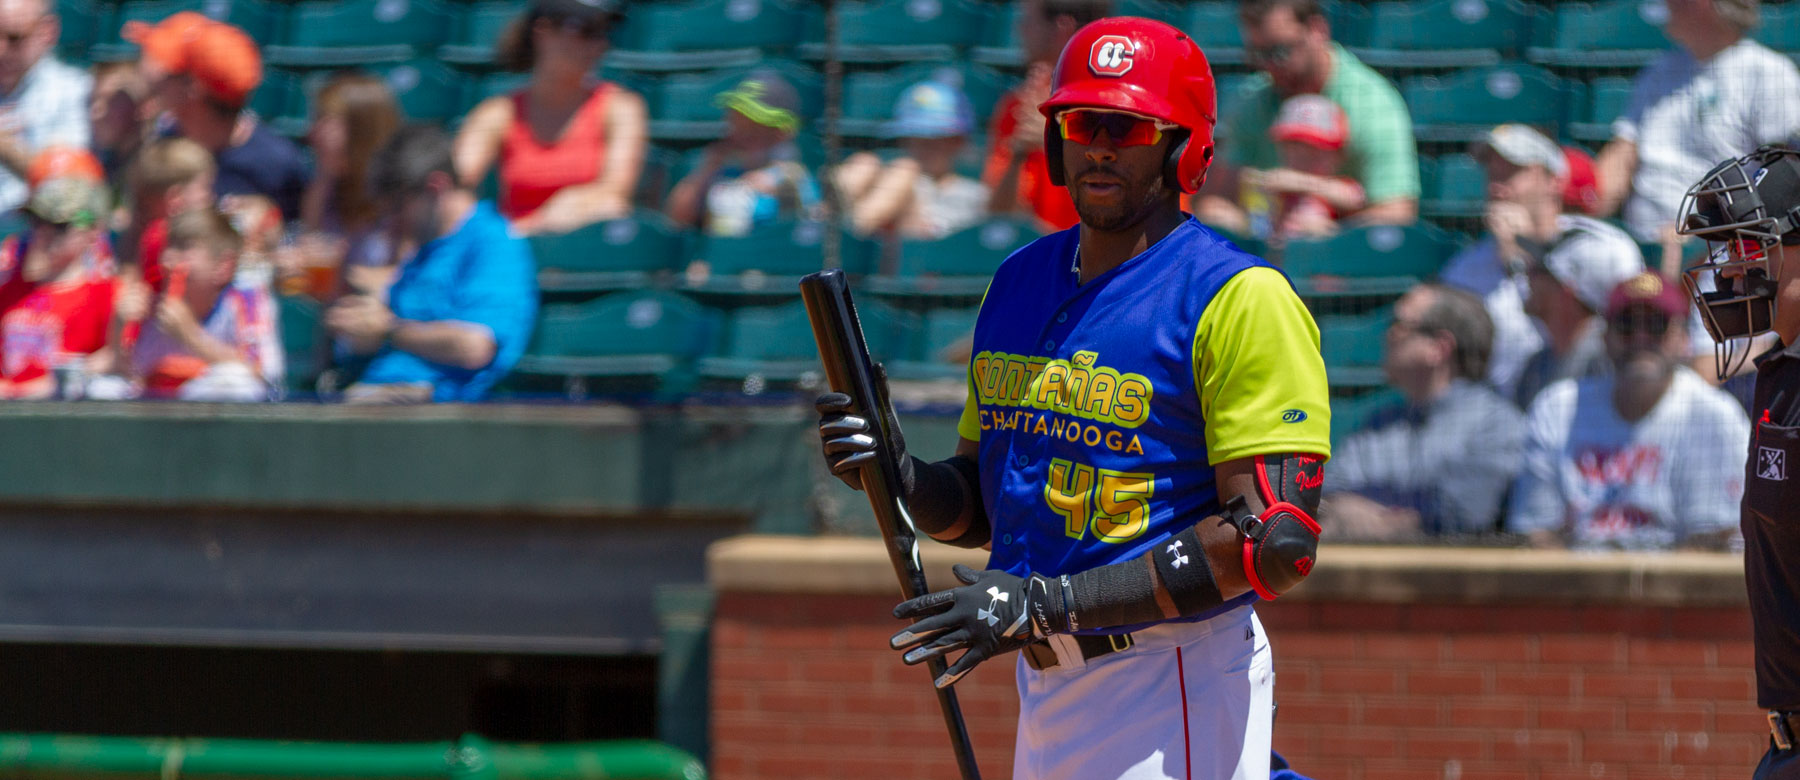 Reds minor leagues longest homers: Chattanooga Lookouts edition